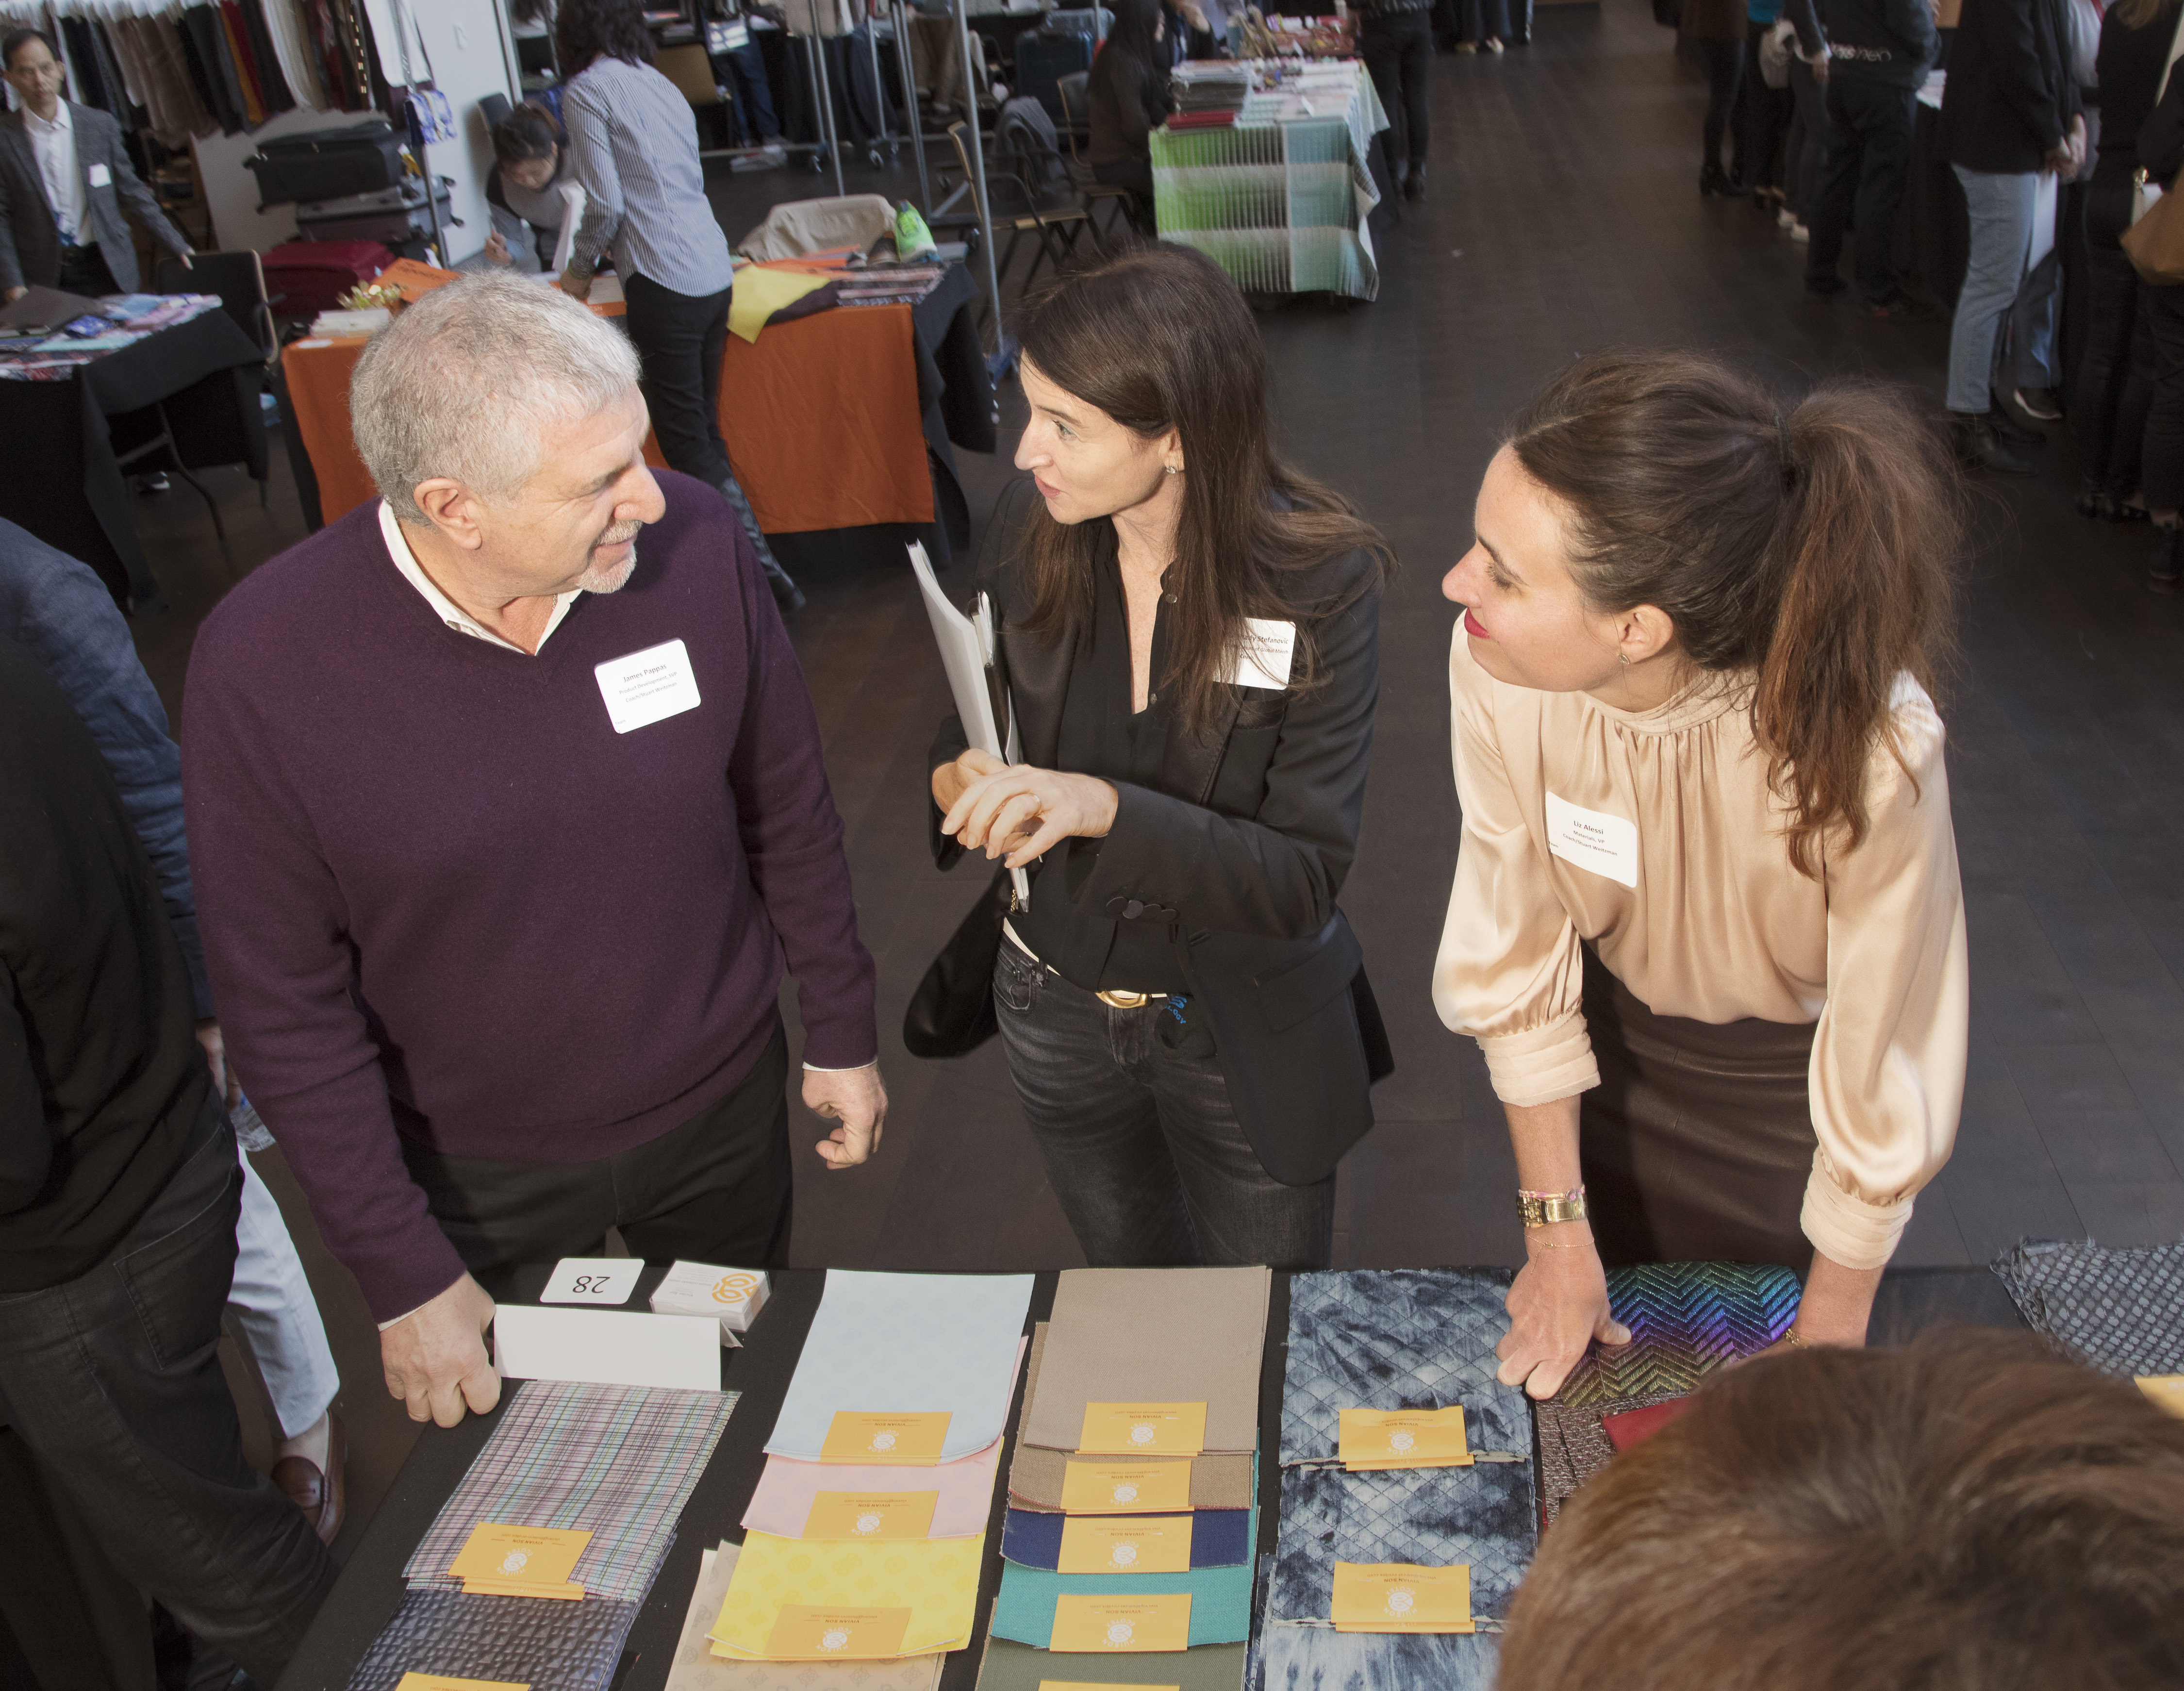 James Pappas, senior vice president for product development at Coach, with team members at a vendor table.